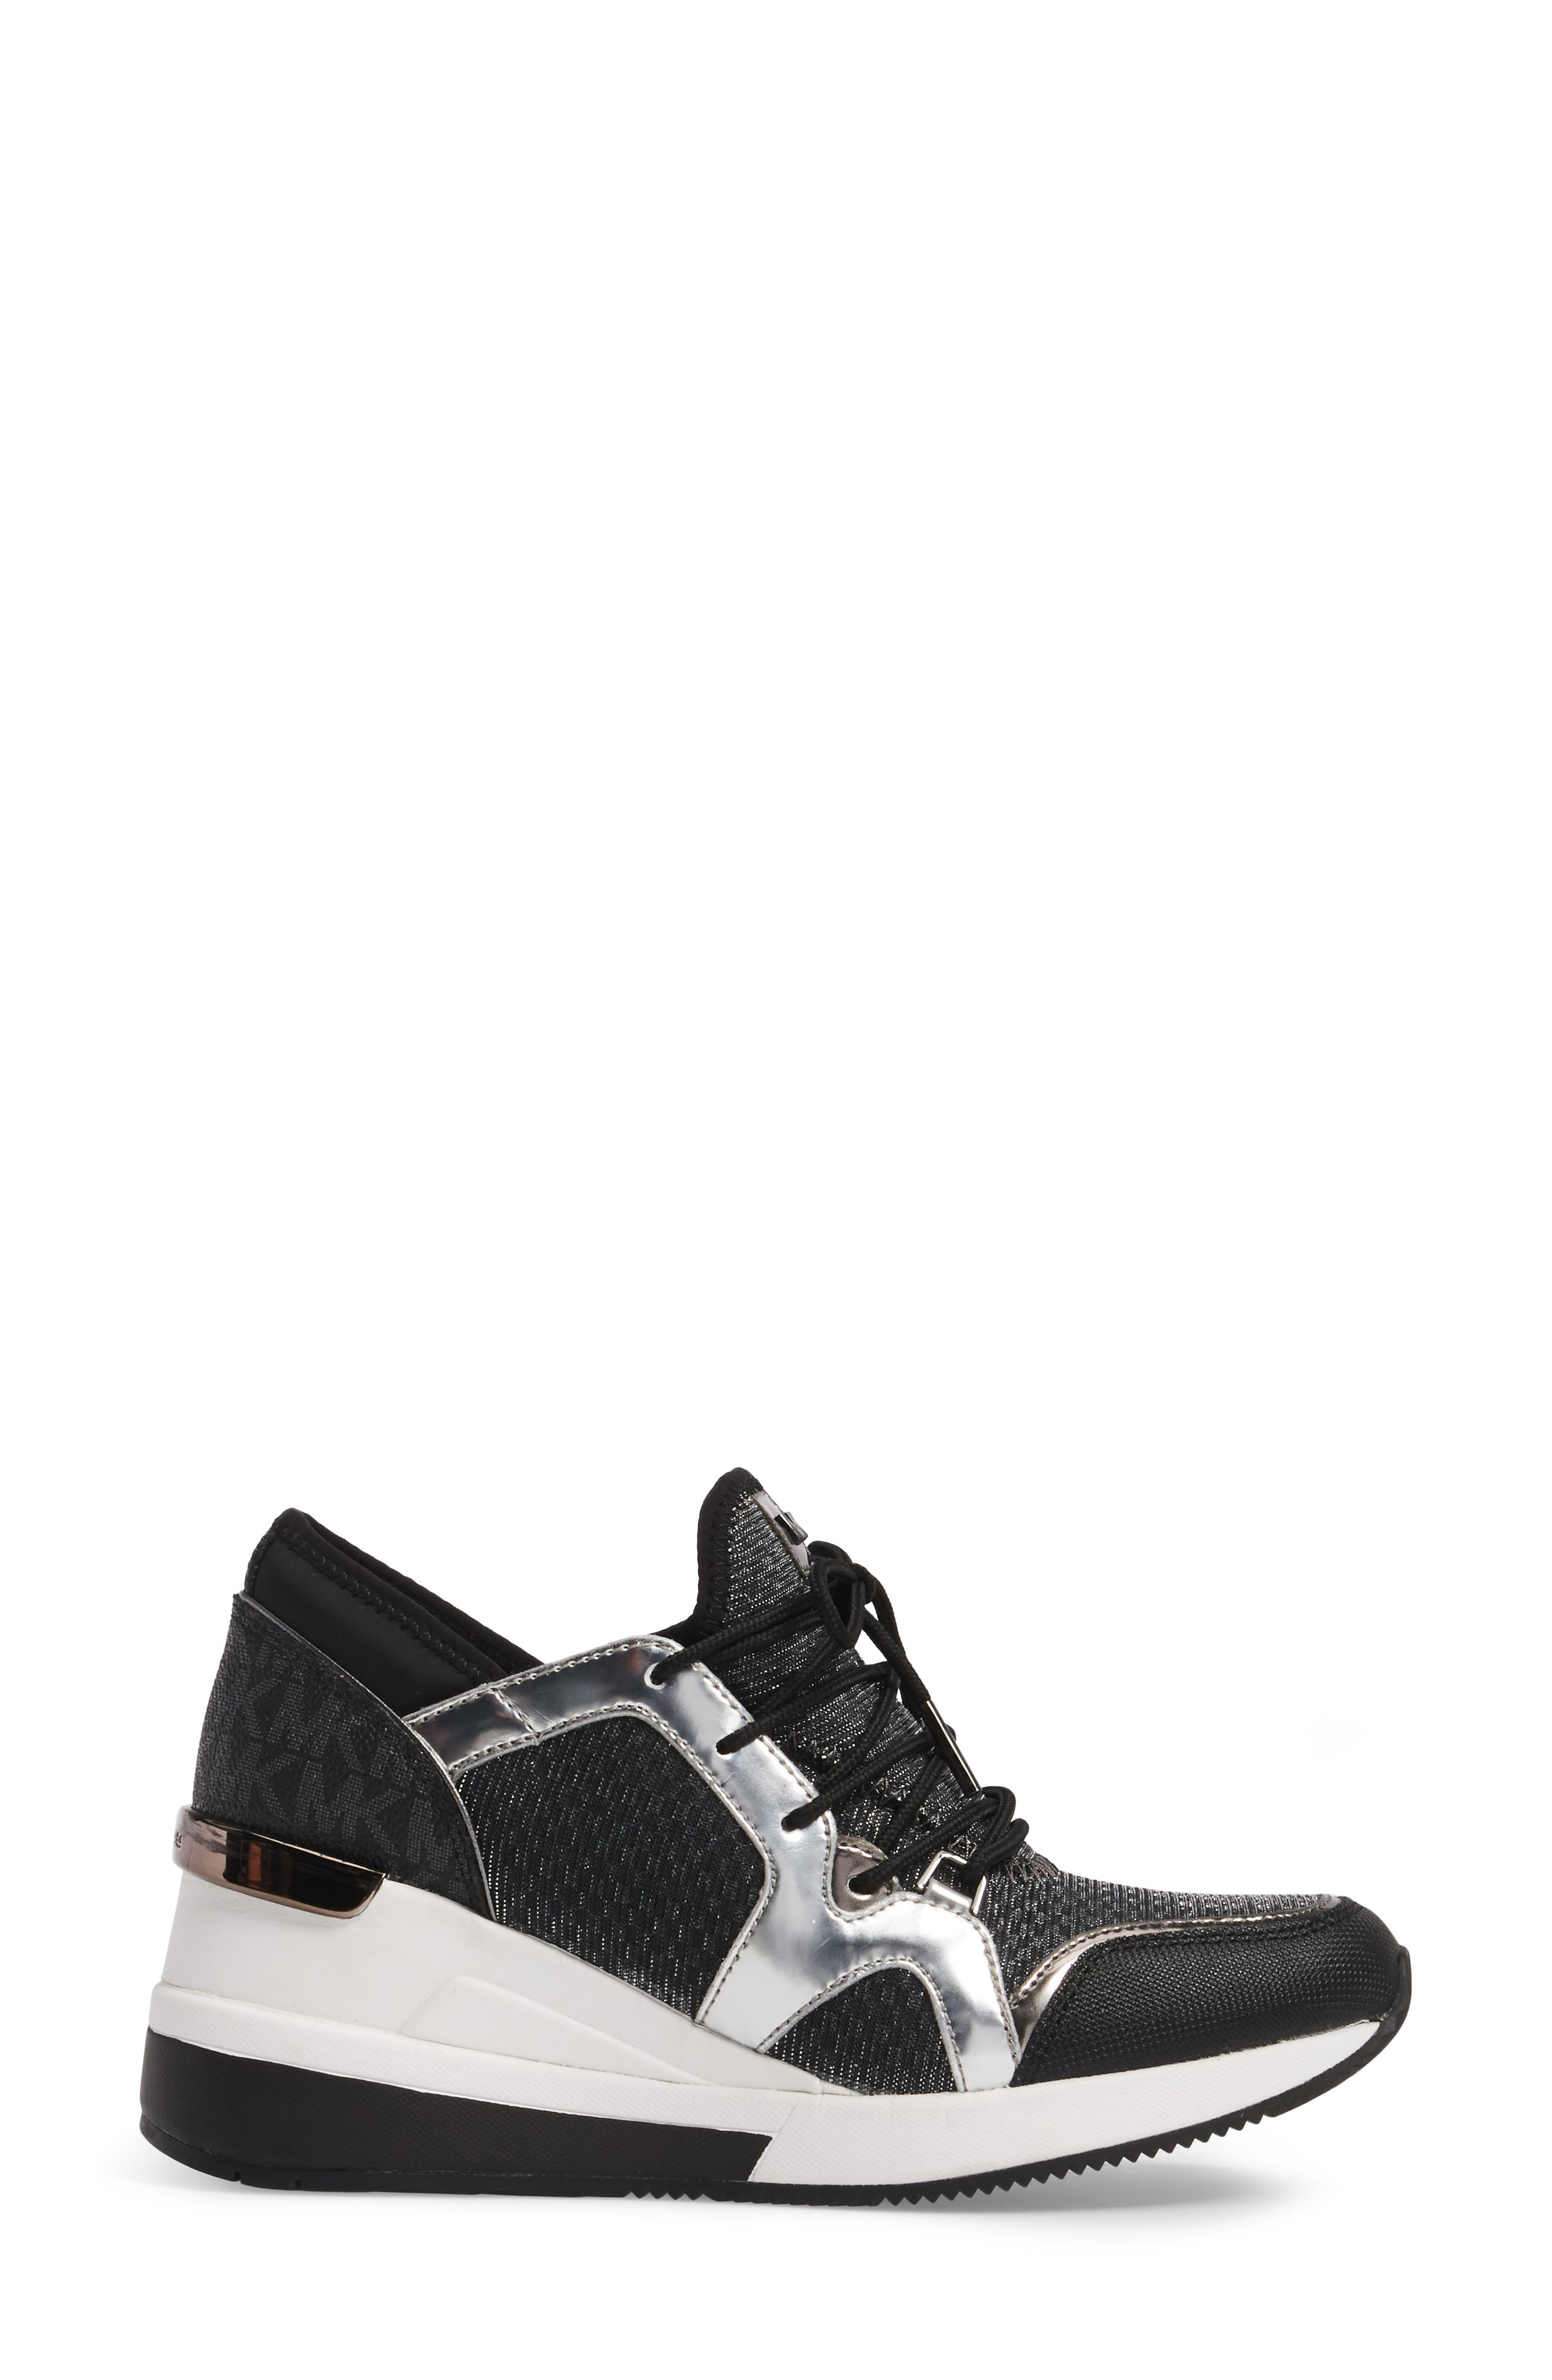 Scout Wedge Sneaker,                             Alternate thumbnail 3, color,                             041